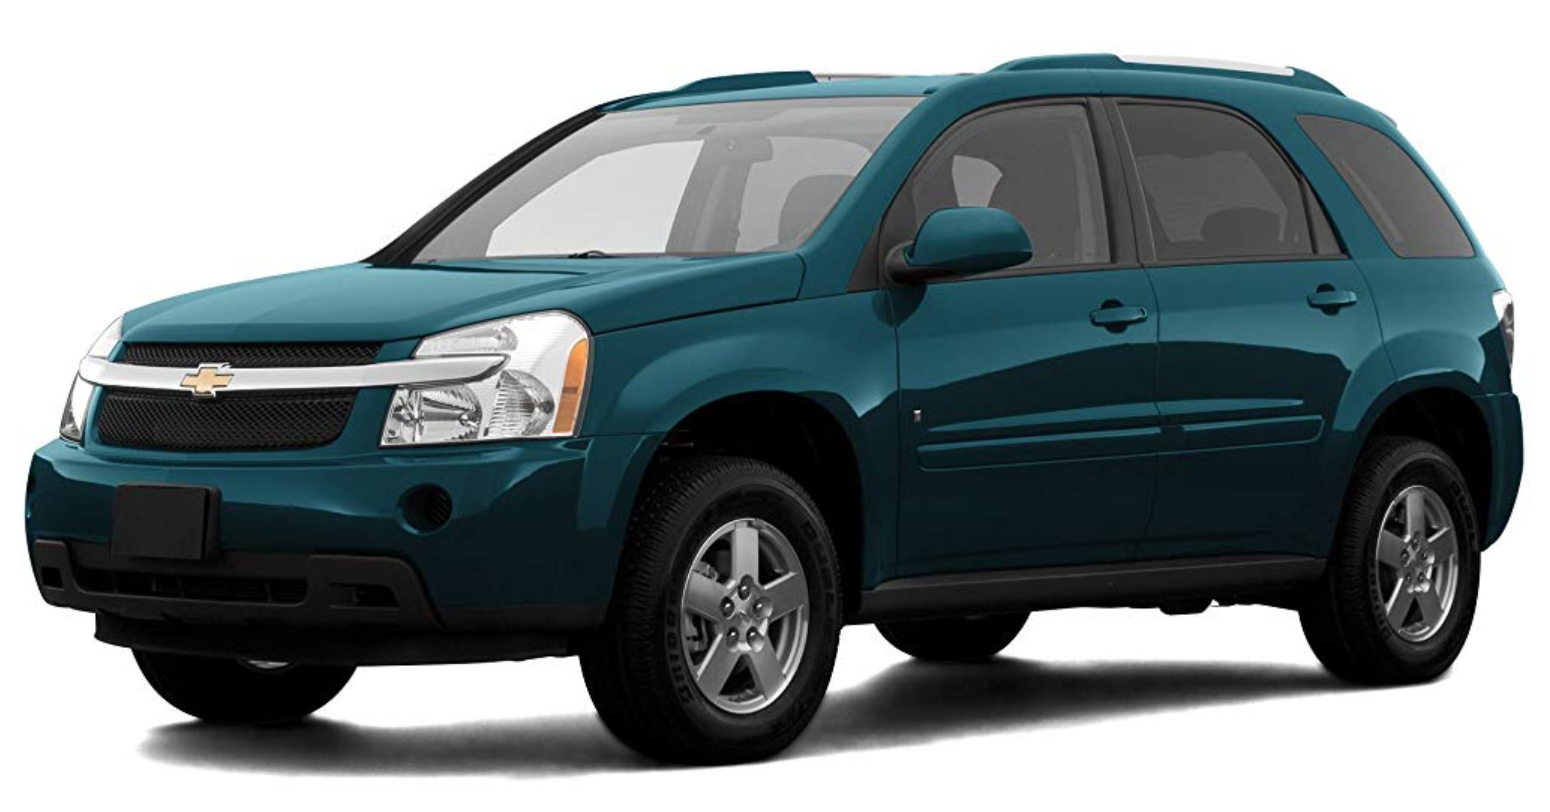 2005 Chevy Equinox Owners Manual Chevrolet Equinox Owners Manuals